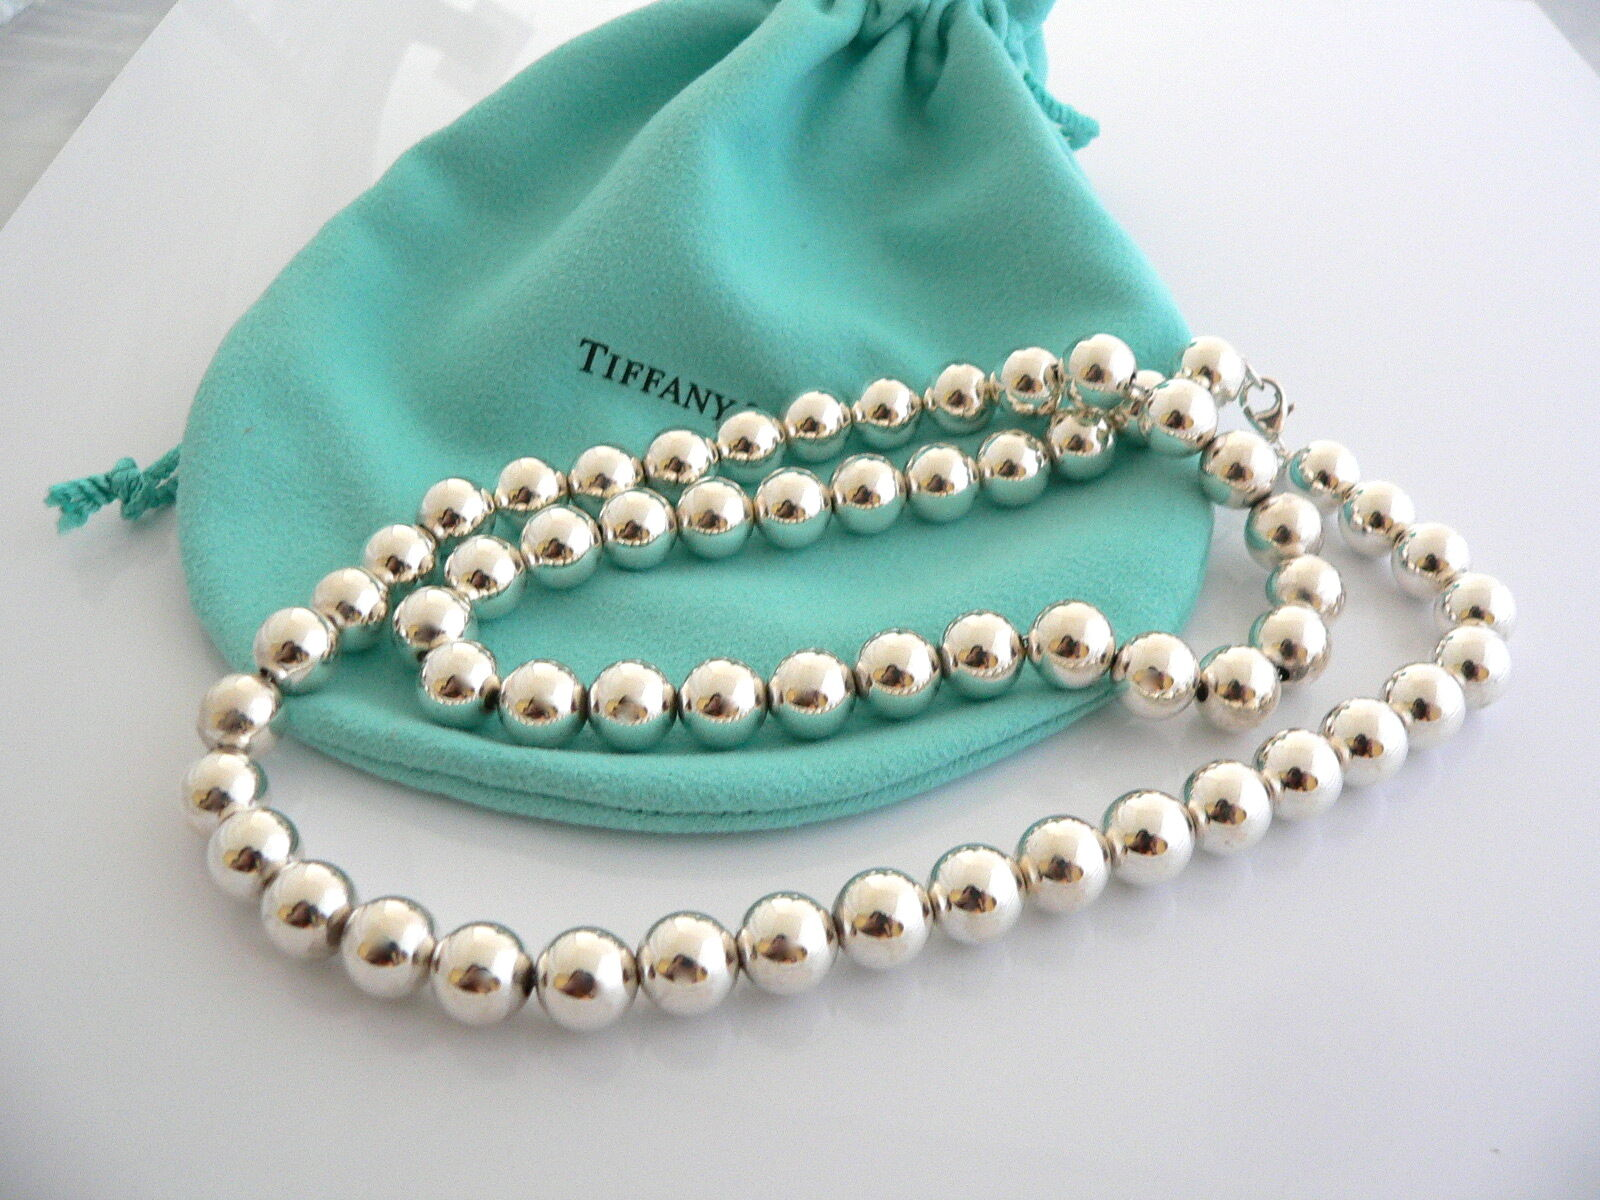 Tiffany & Co Silver 10 MM Ball Bead Necklace 31.5 In Chain Rare Gift Pouch Love